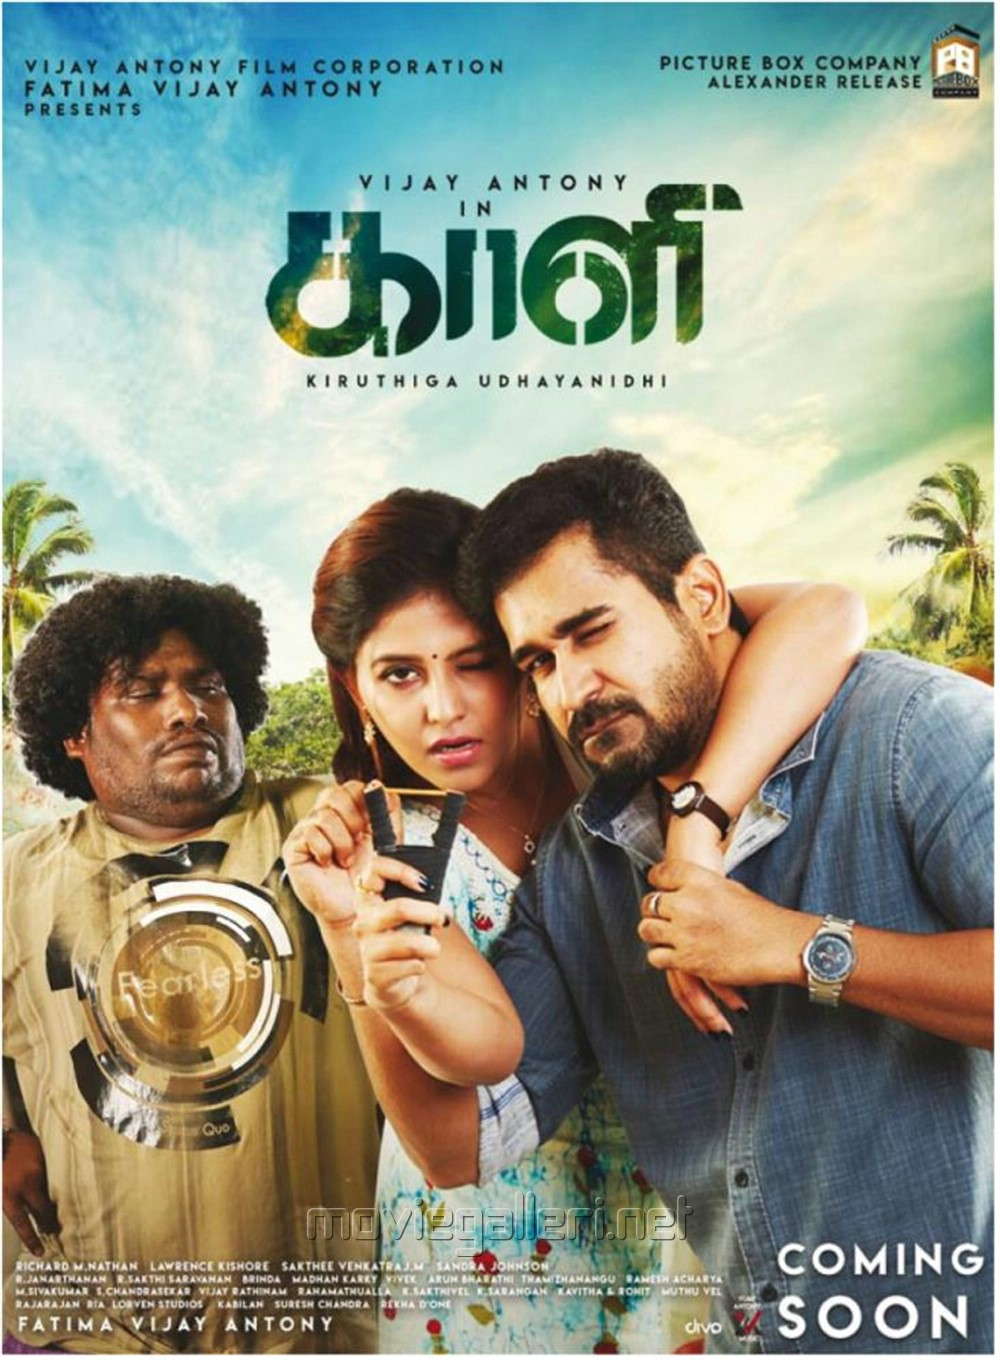 Yogi Babu, Anjali, Vijay Antony in Kaali Movie Posters